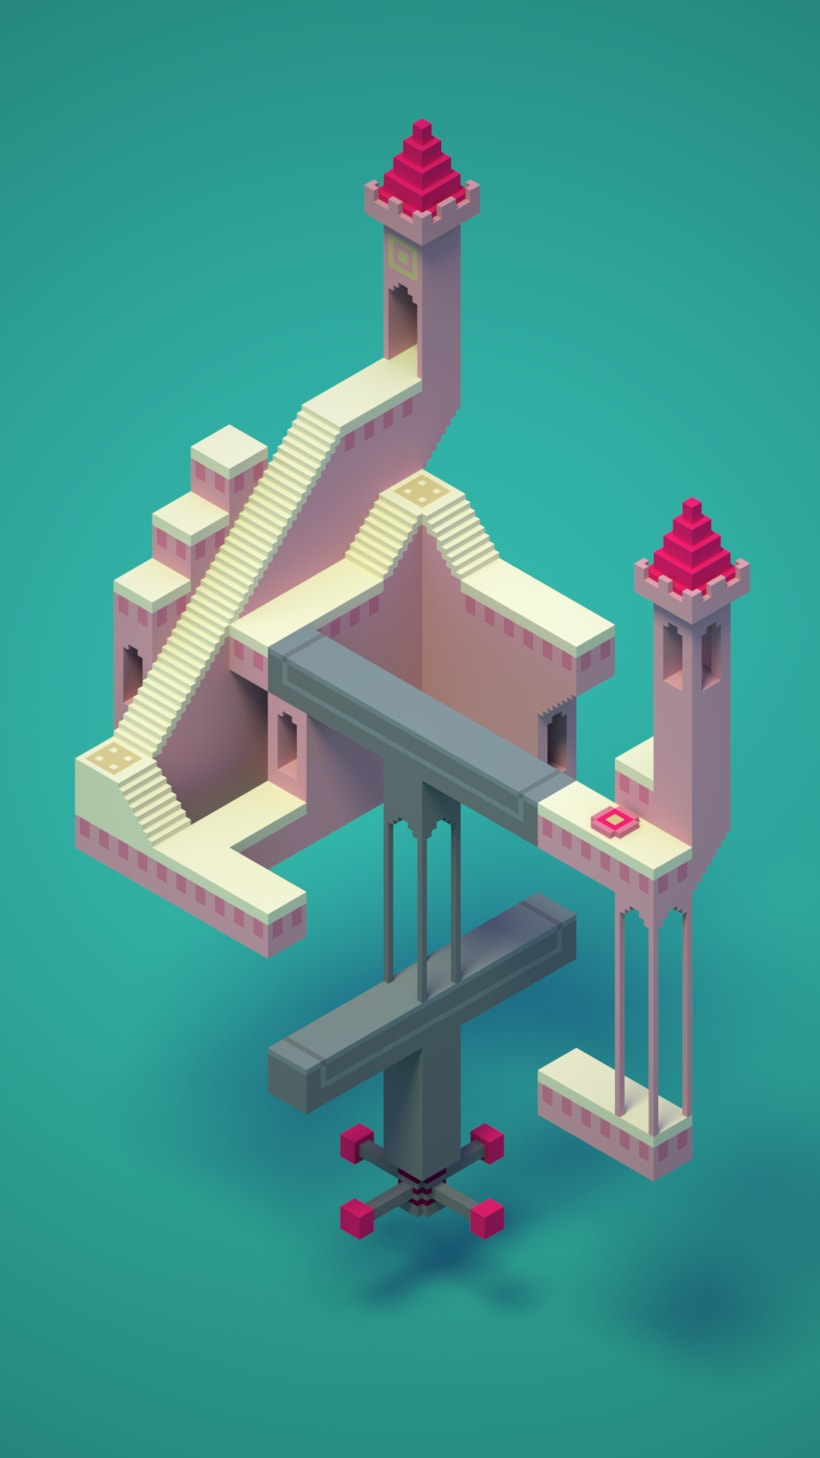 Monument Valley Fan Art con MagicaVoxel 0